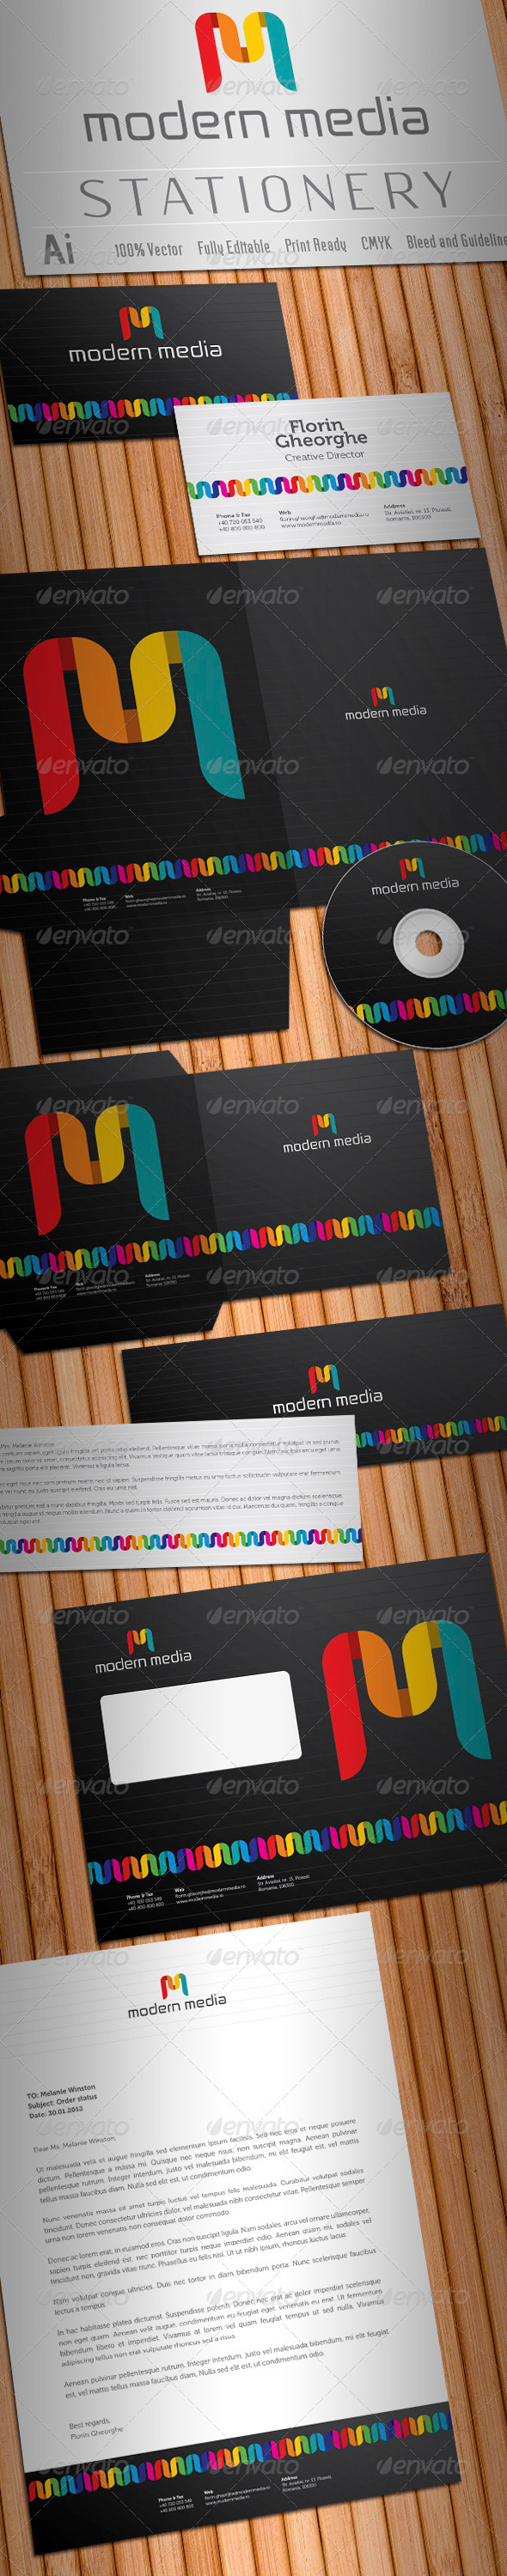 Graphic River Modern Media Stationery V2 Print Templates -  Stationery 1520152